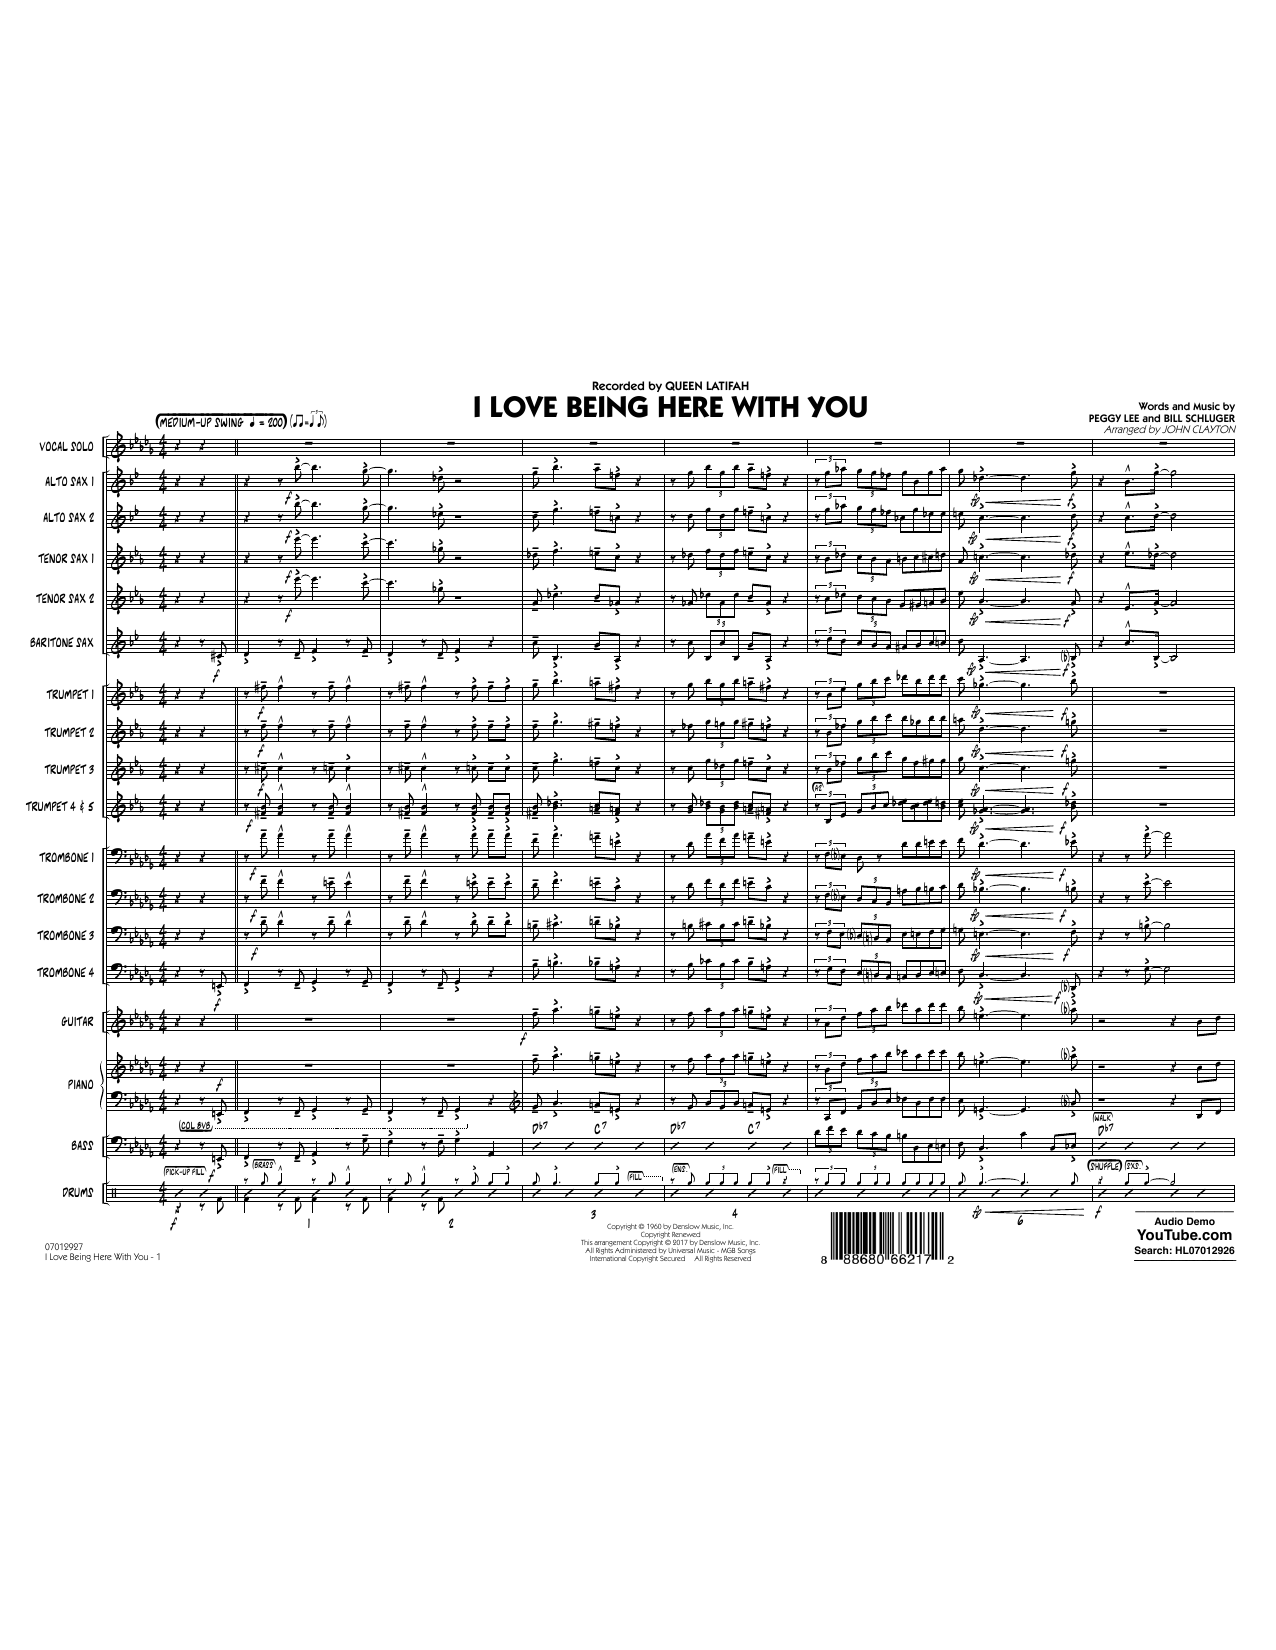 John Clayton I Love Being Here with You (Key: Db) - Conductor Score (Full Score) sheet music notes and chords. Download Printable PDF.